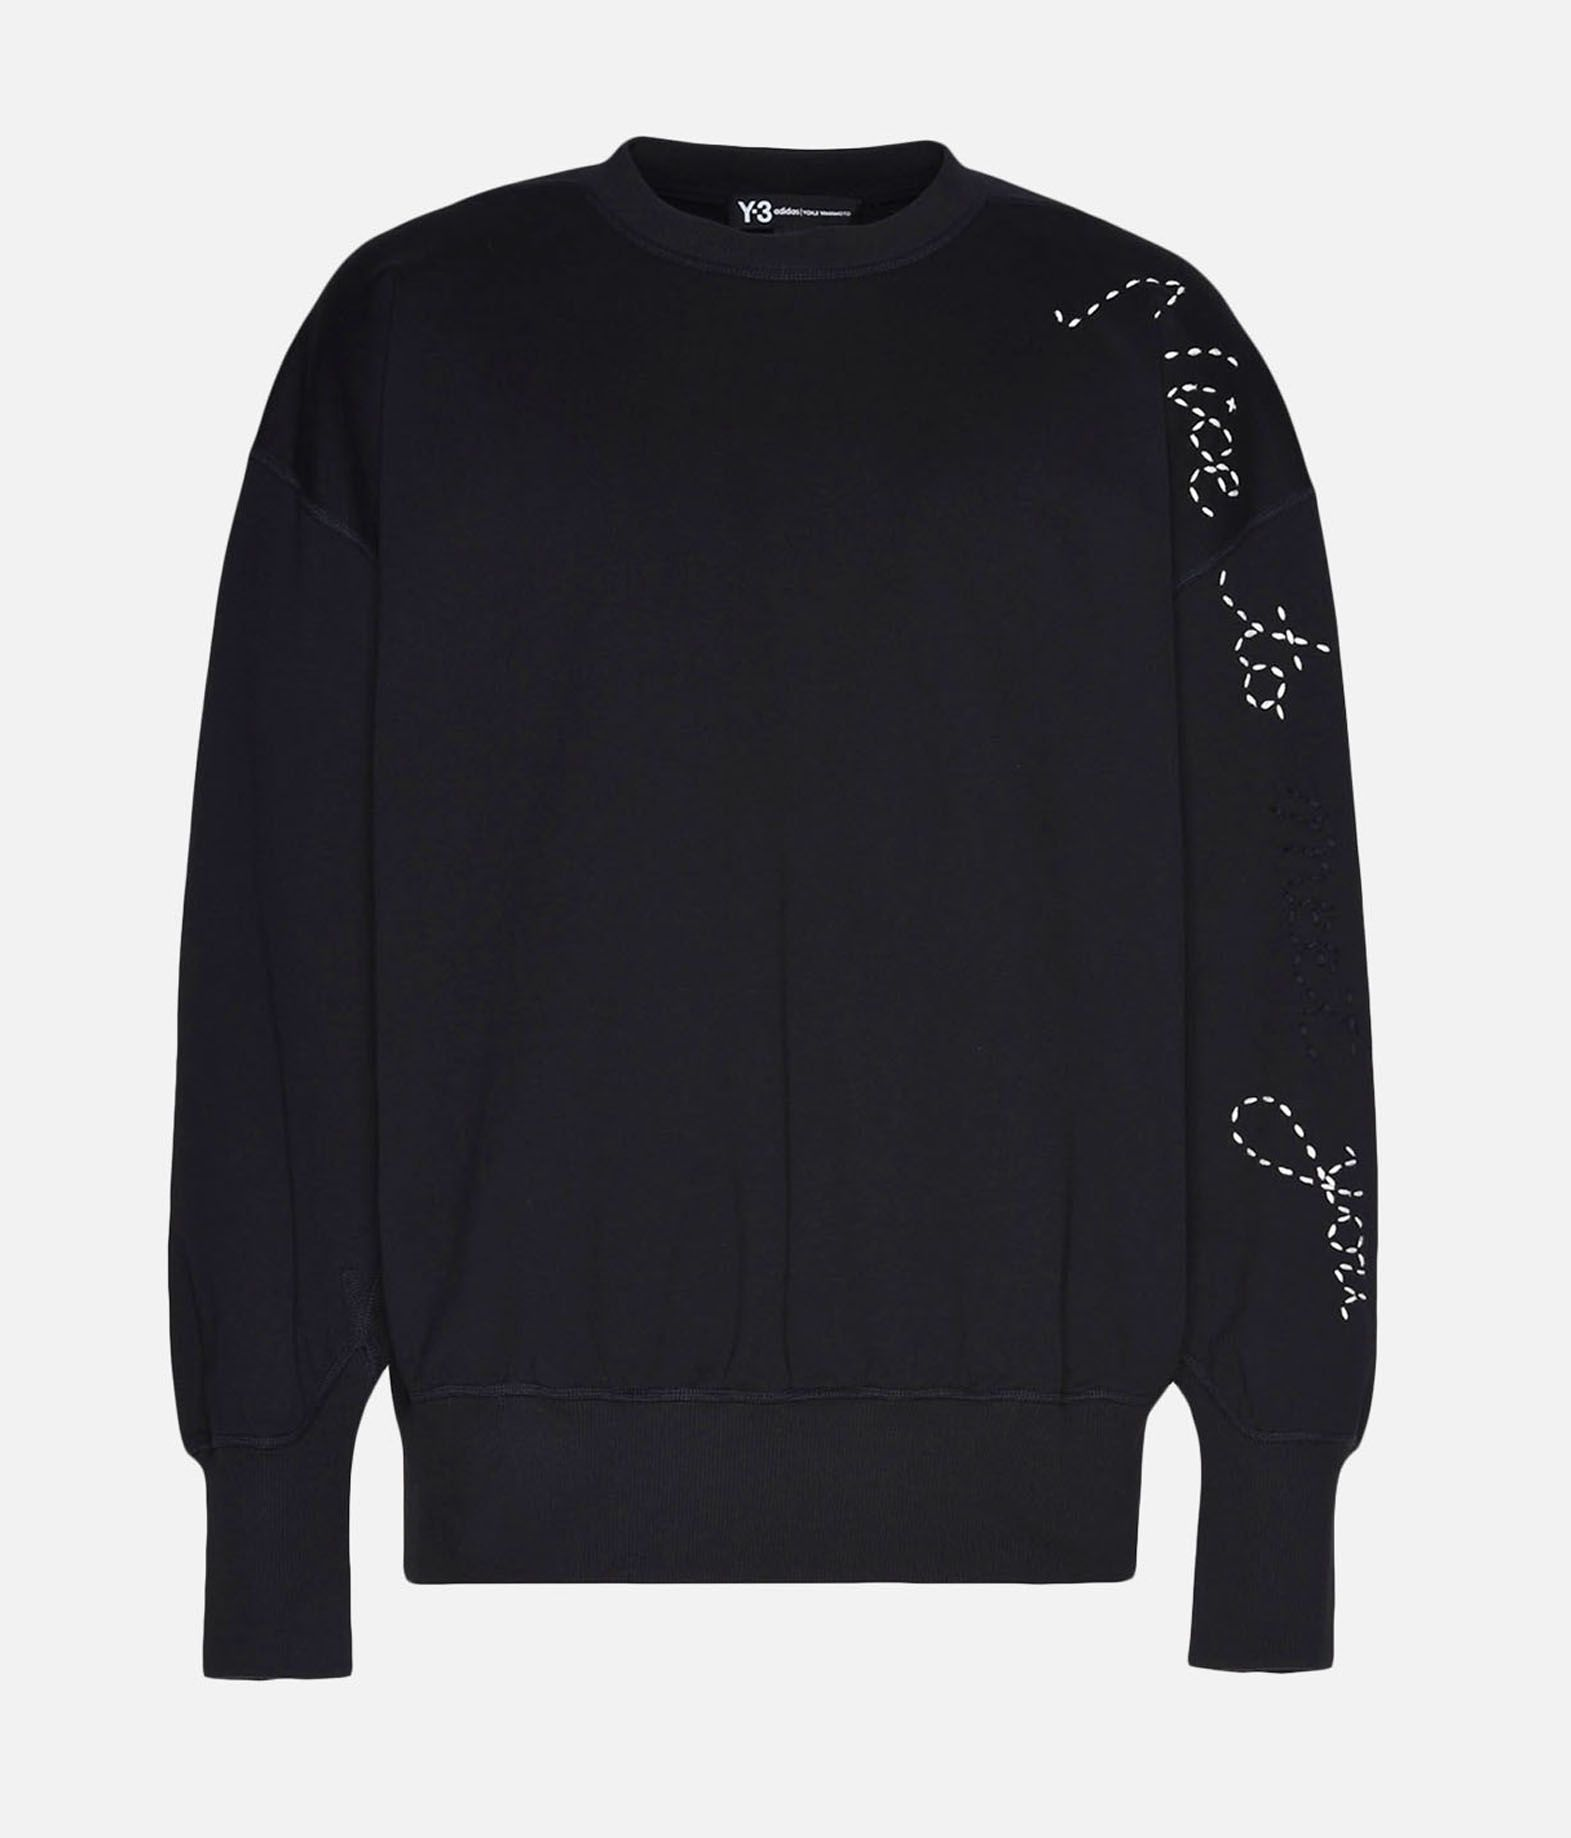 Y-3 Y-3 Sashiko Slogan Sweater スウェット メンズ f